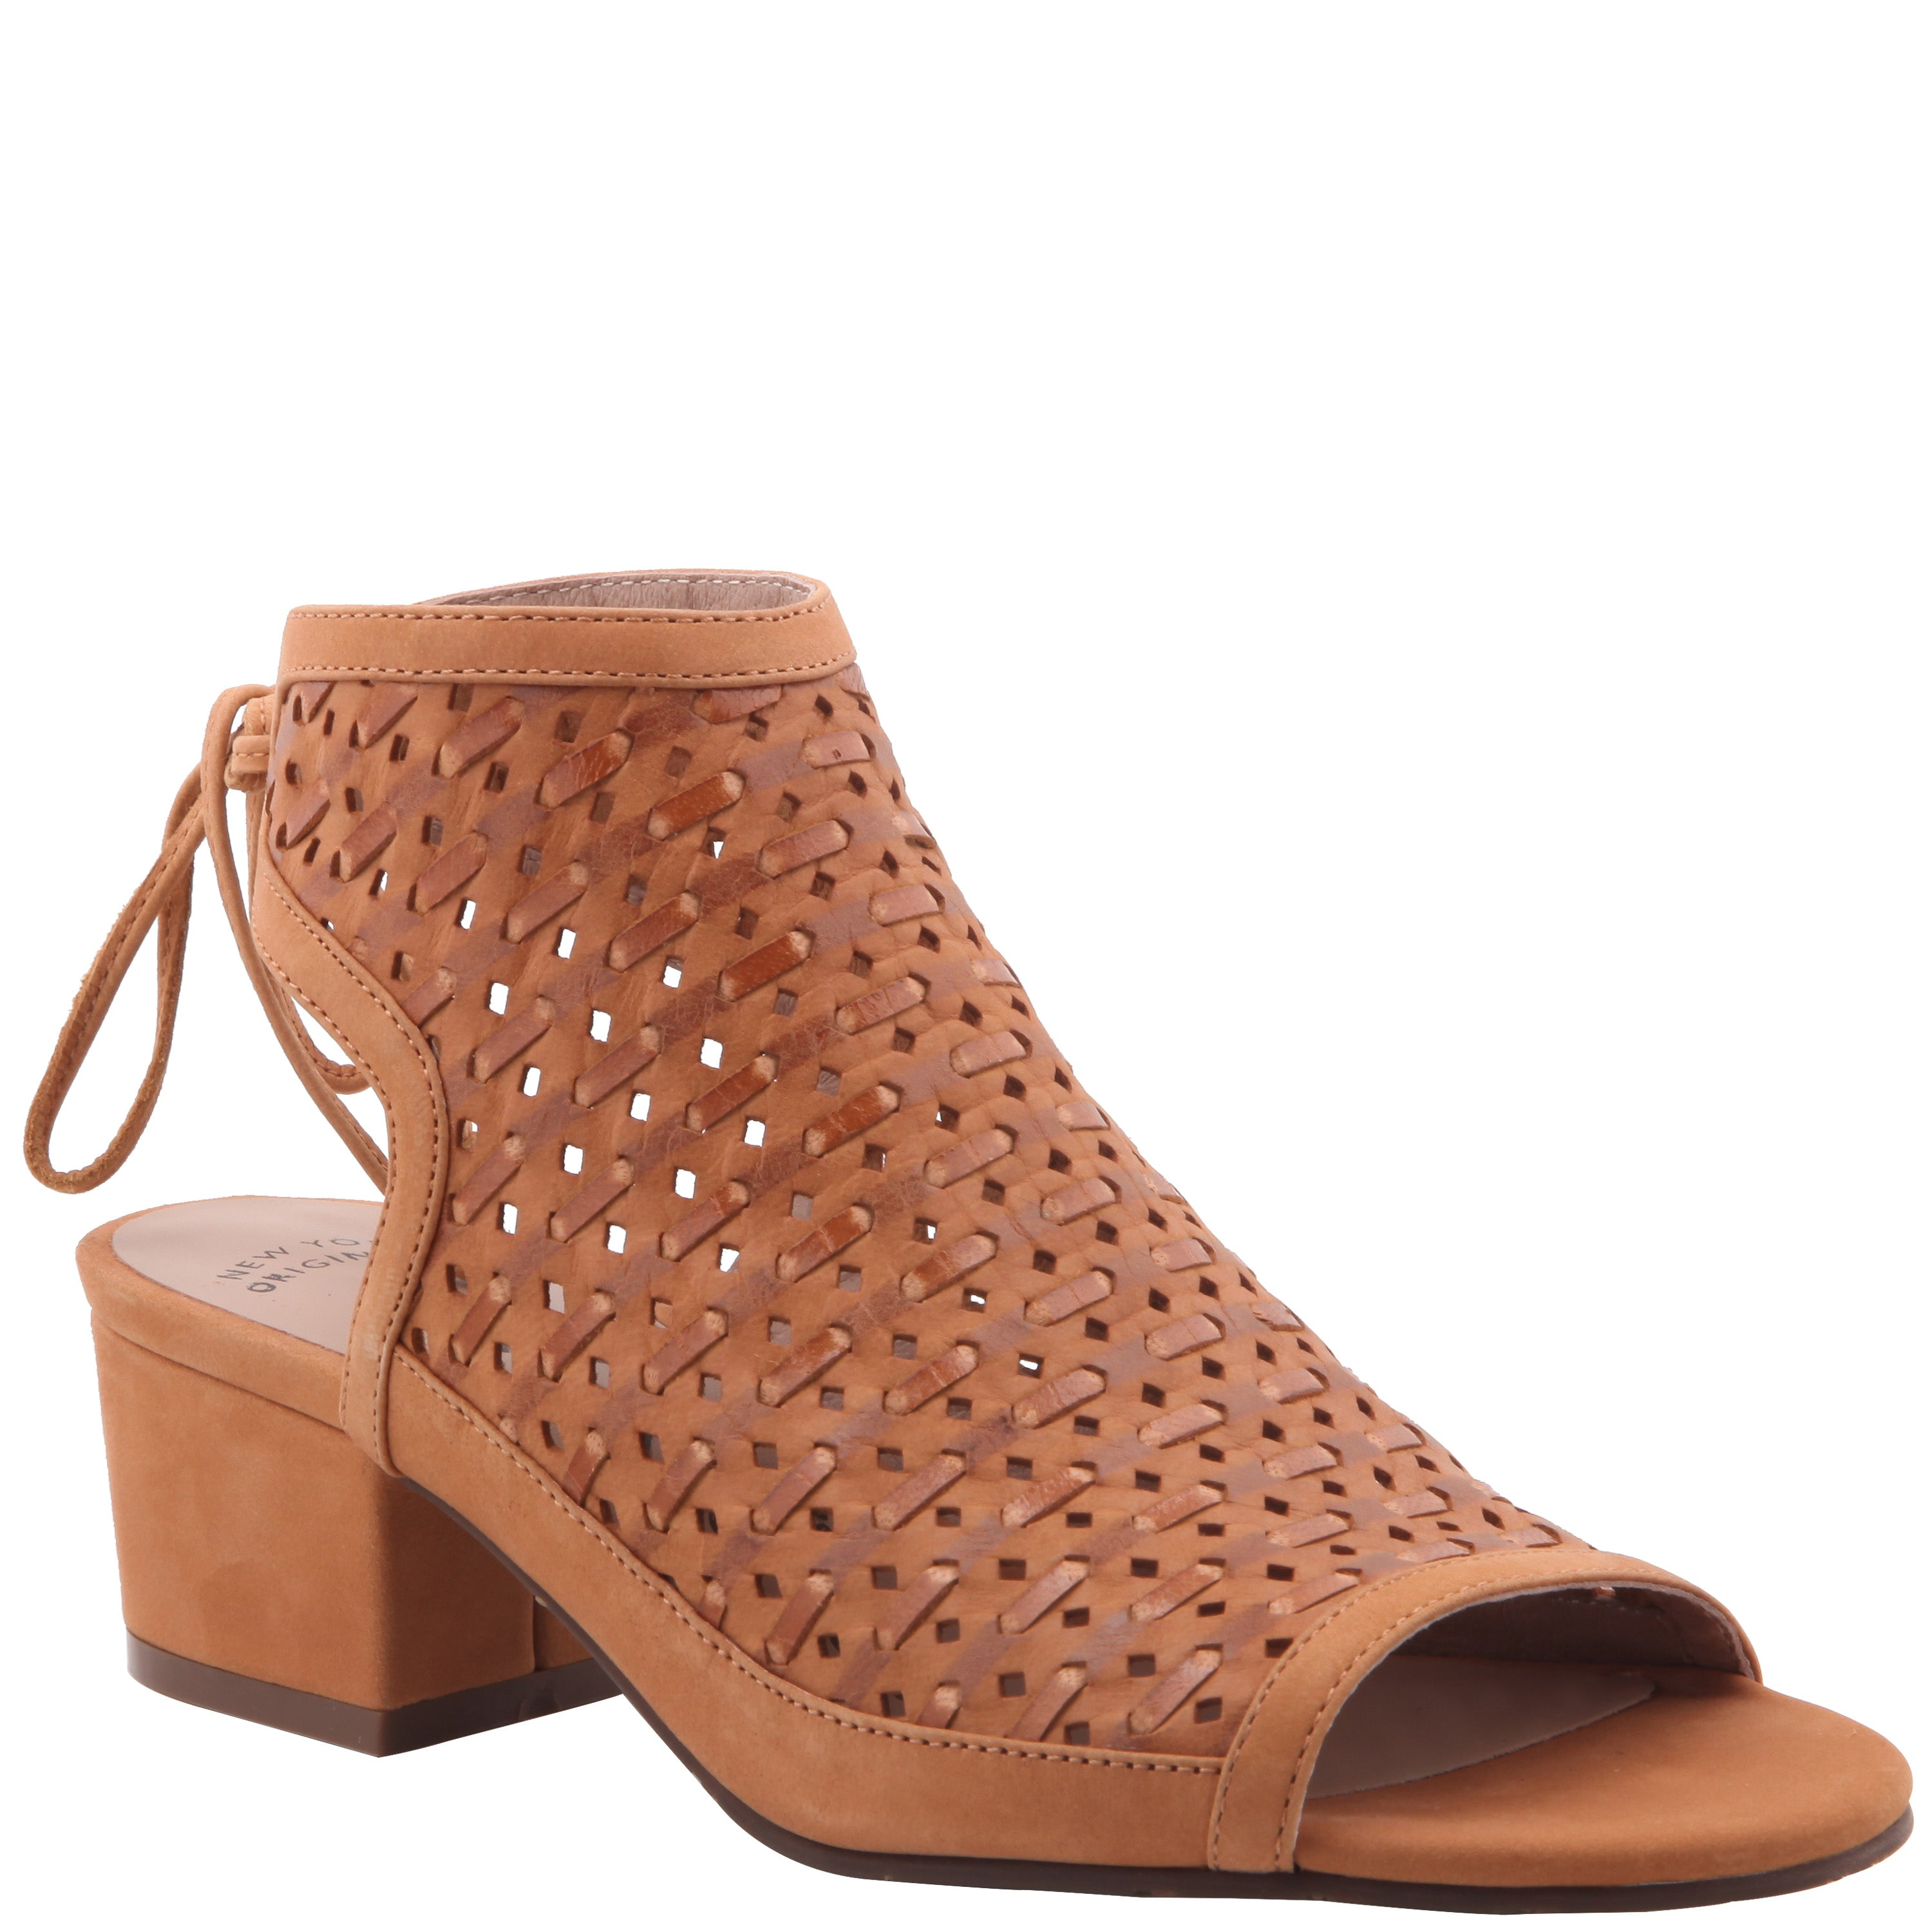 CAMEL PERFORATED WOVEN LEATHER